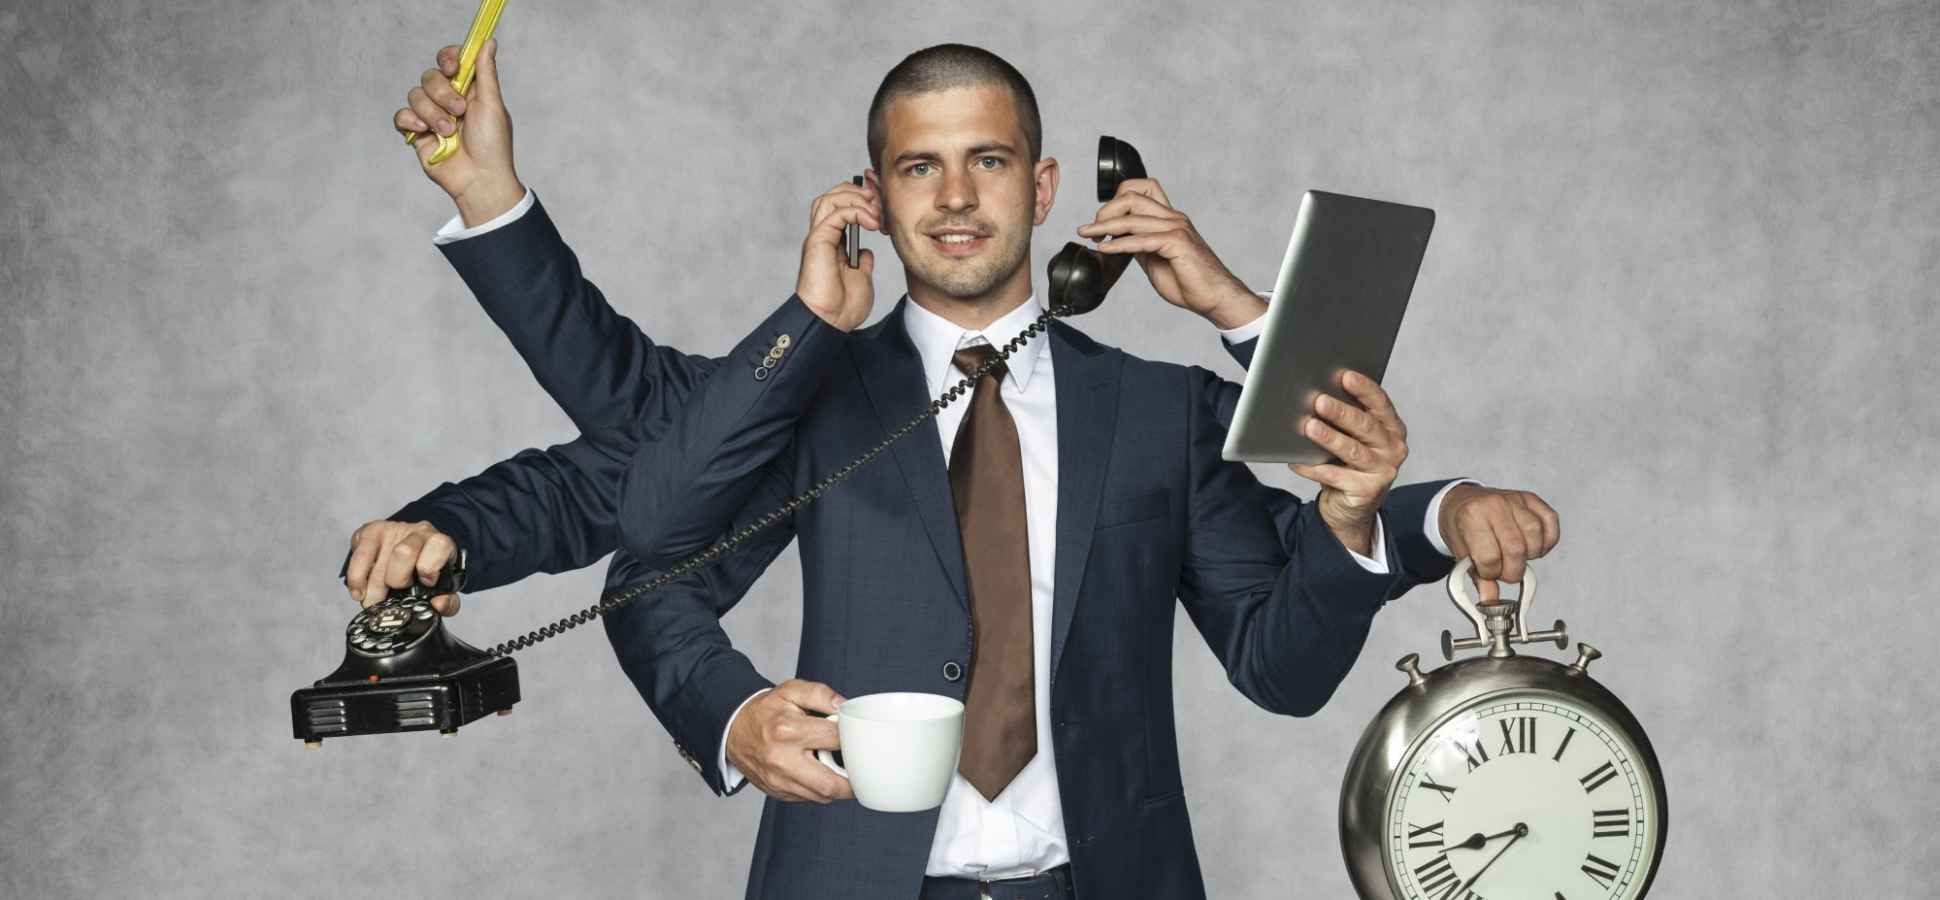 11 Tools for the Modern Sales Rep